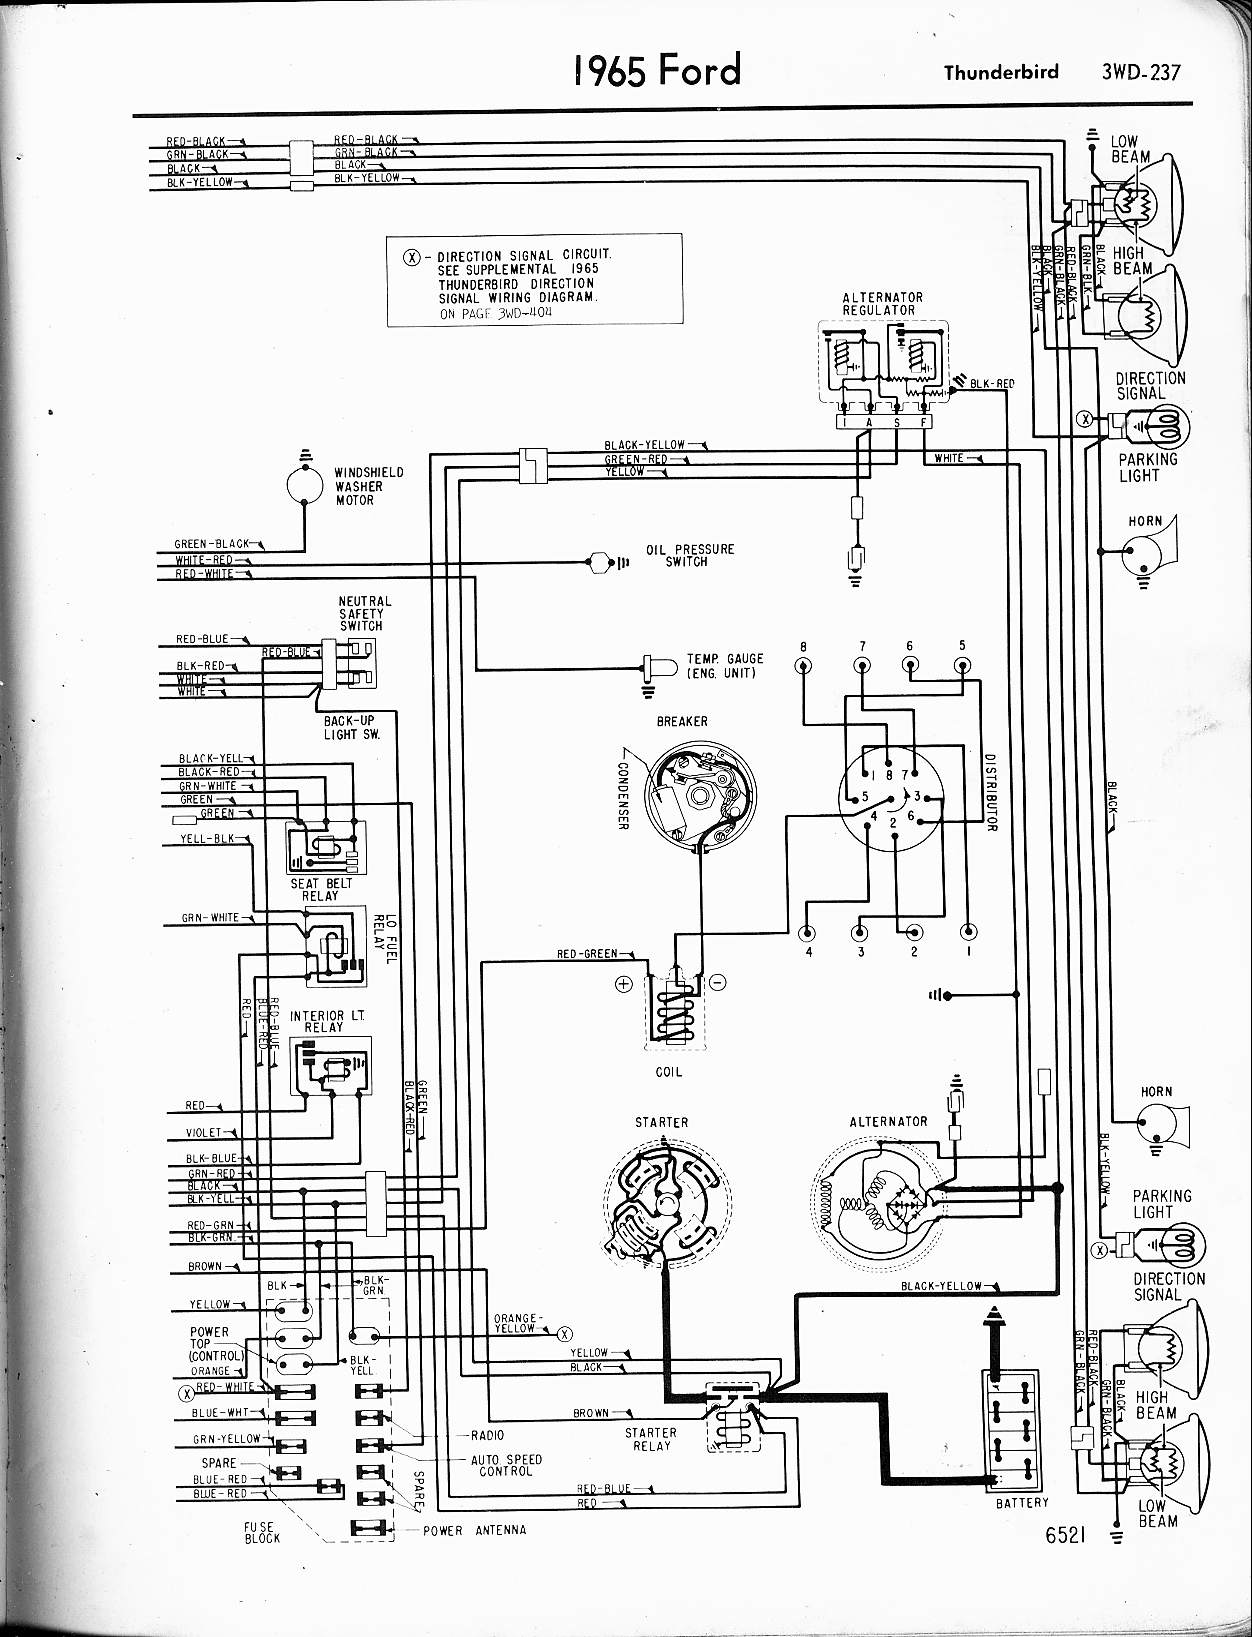 1956 farmall cub wiring diagram schematic electricity site 1941 farmall a wiring harness 6 volt diagram 1956 farmall cub wiring diagram schematic best wiring library